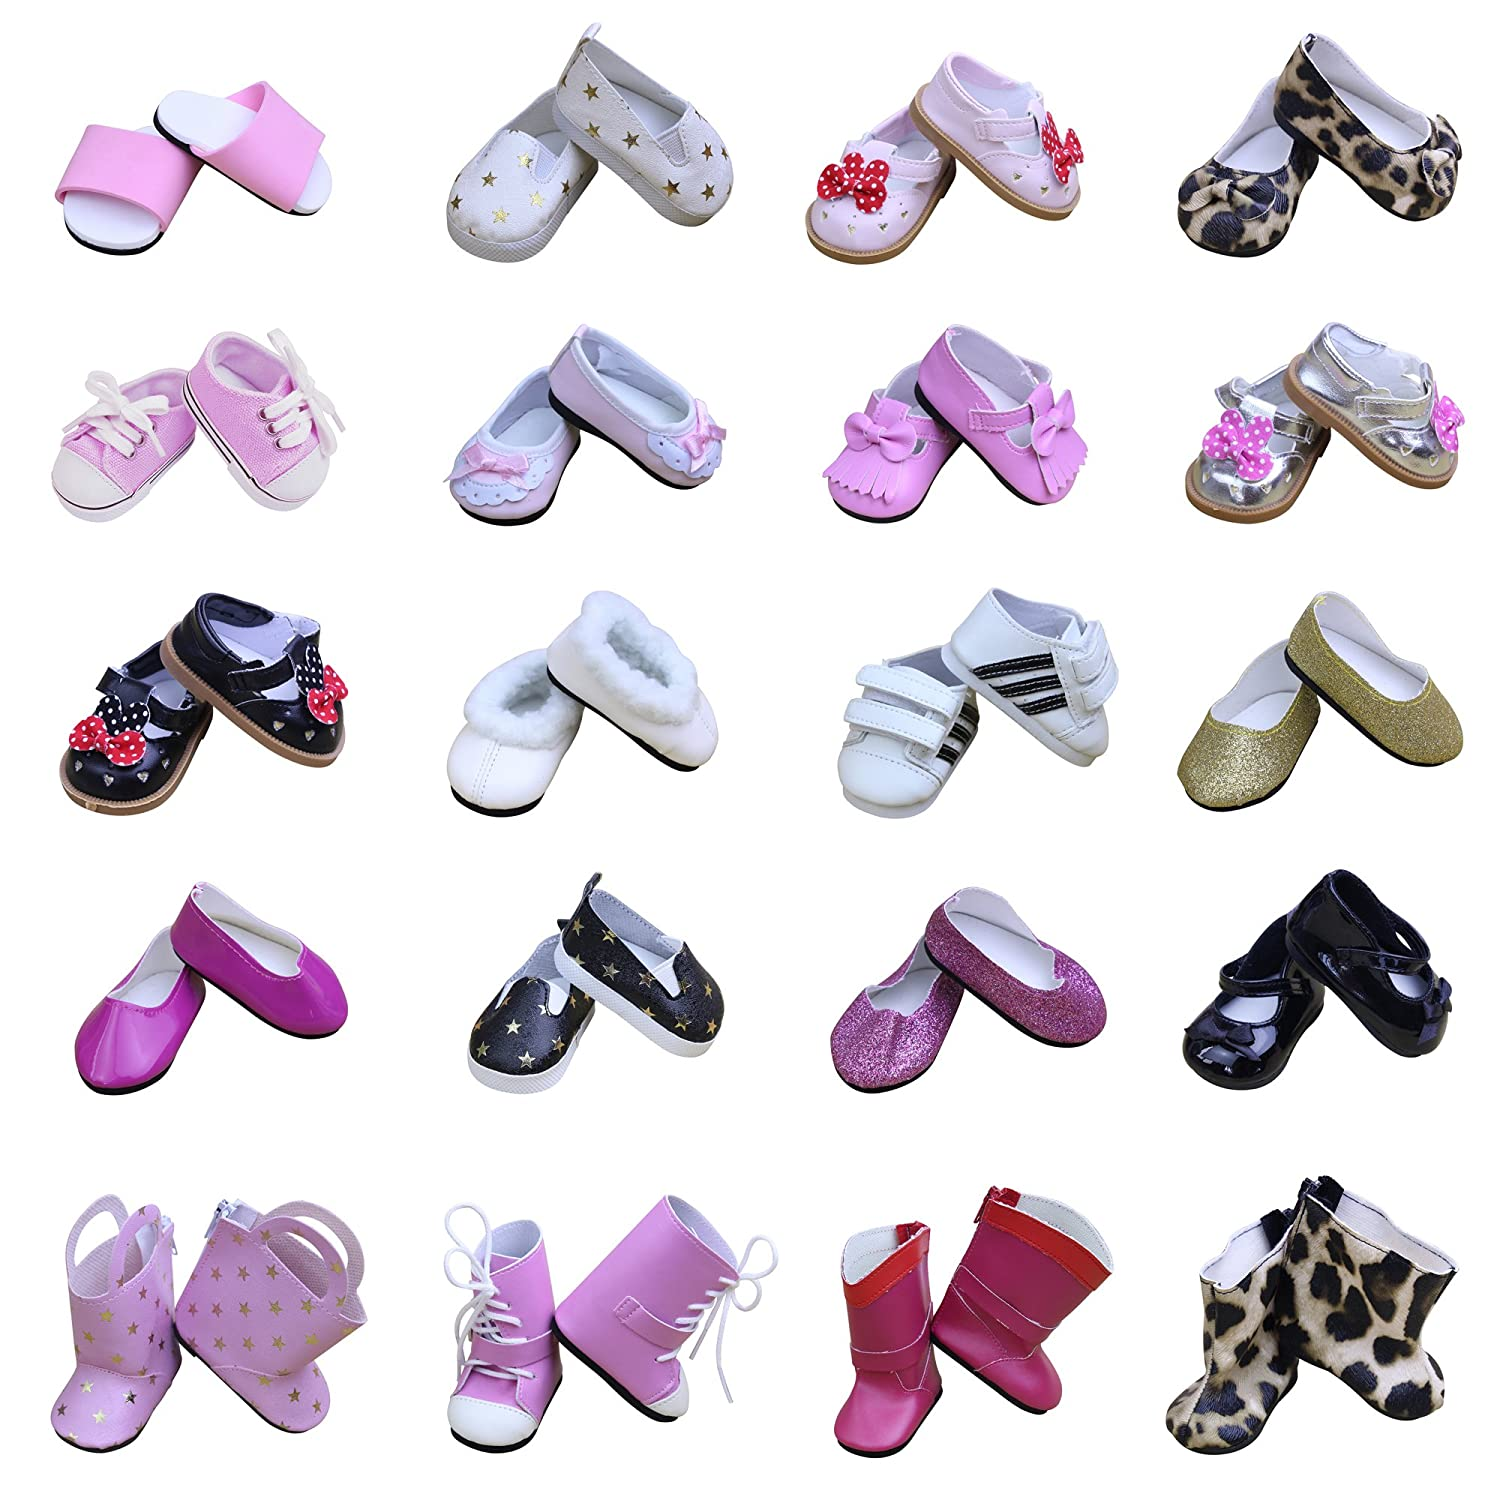 ZITA ELEMENT 5 Pairs Various Assortment Party Shoes for American 18 Inch Girl Doll Outfits and Other 18 Dolls Clothes Accessories